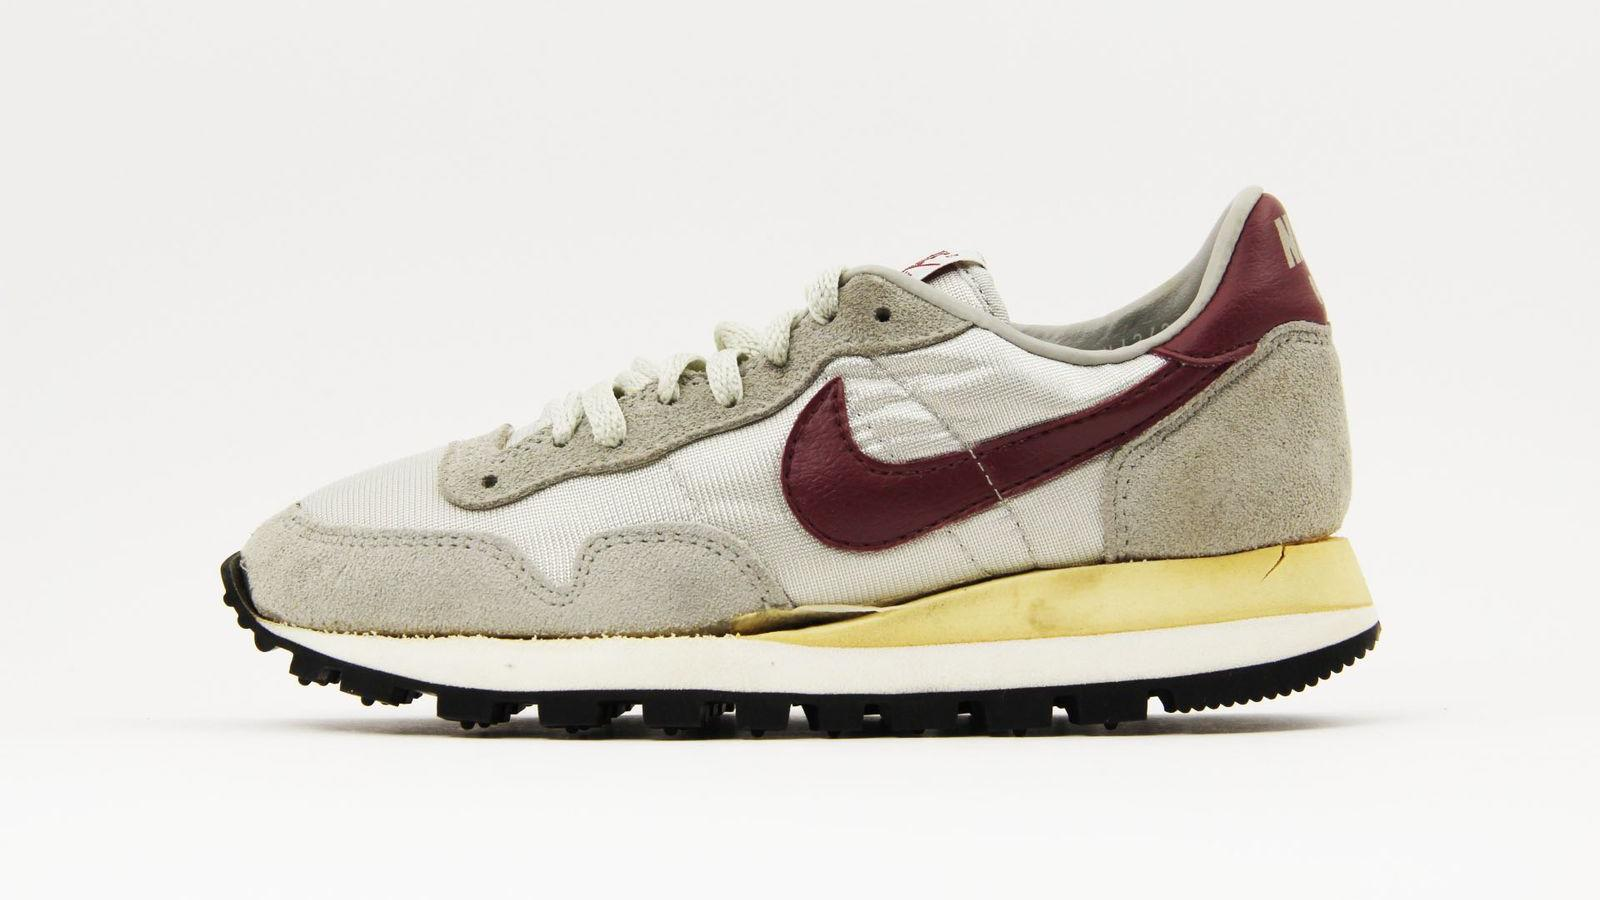 Nike Air Zoom Pegasus History and Facts - Nike News 8d5a1d8e76